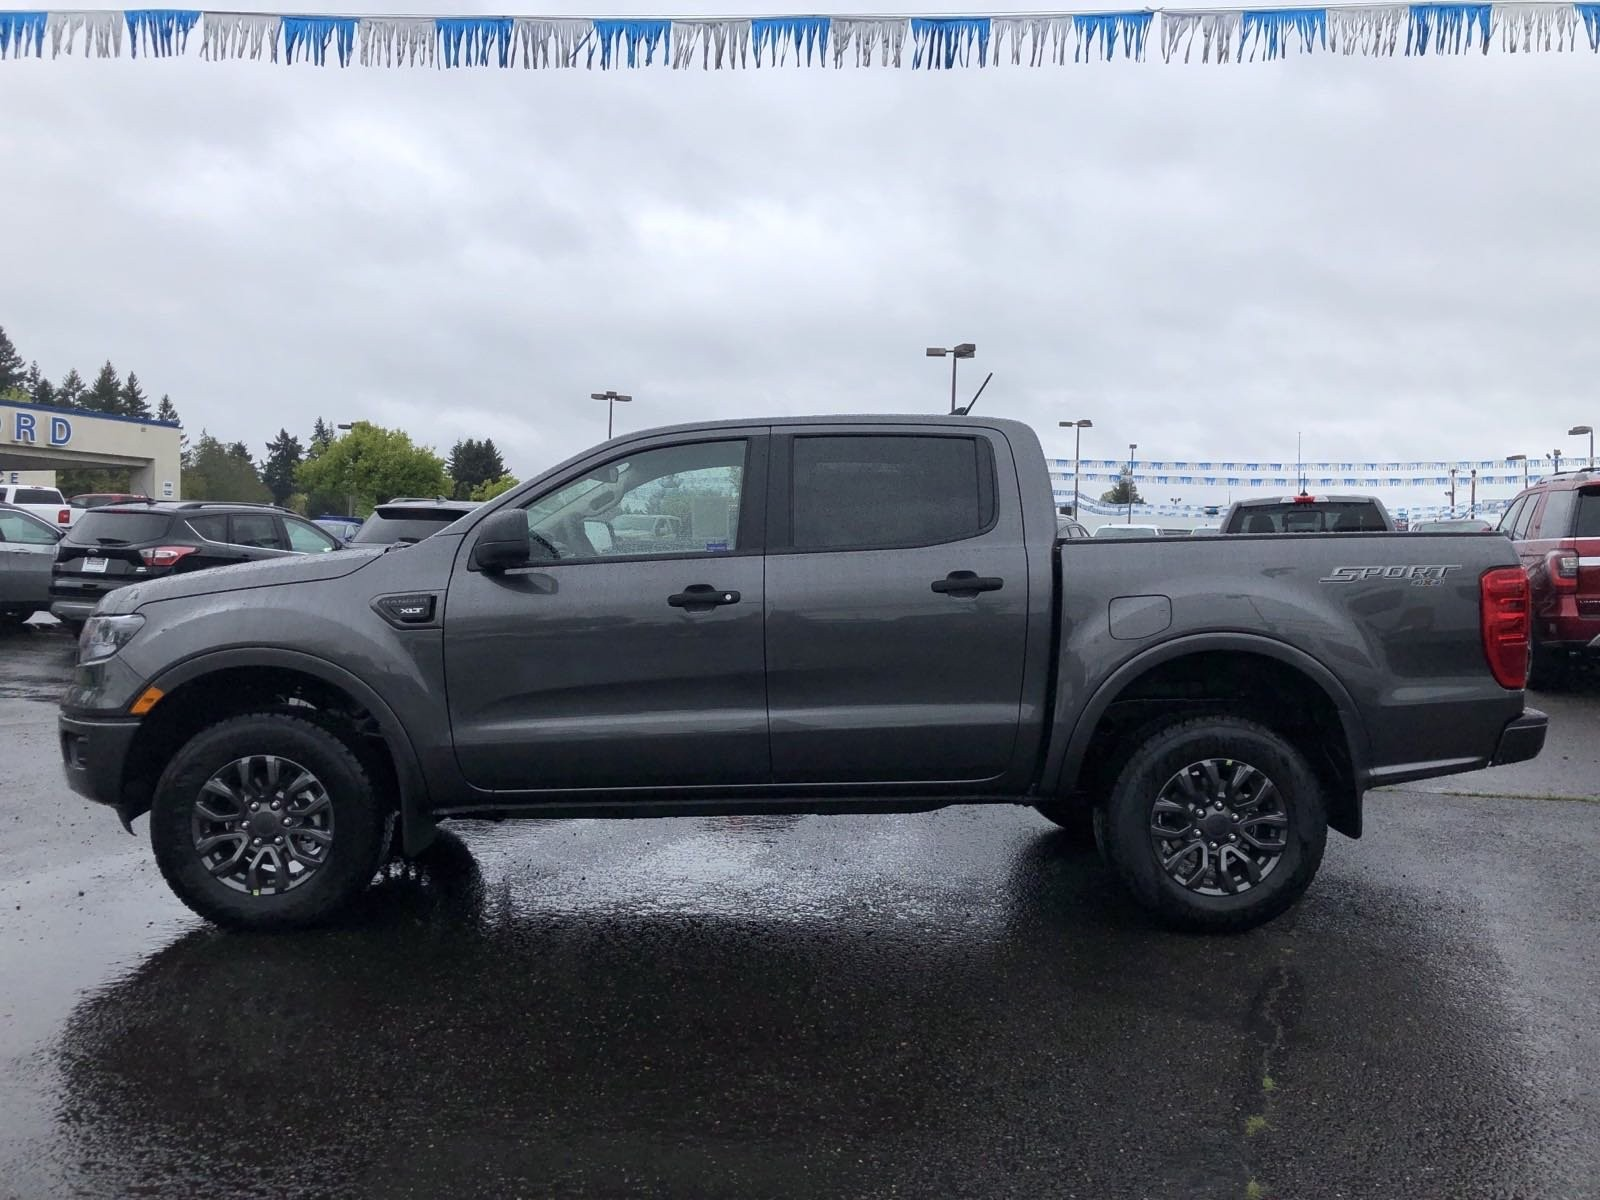 08ford Ranger Alt Wireing New 2020 ford Ranger Xlt Cc 4×4 145 with Navigation & 4wd Of 08ford Ranger Alt Wireing